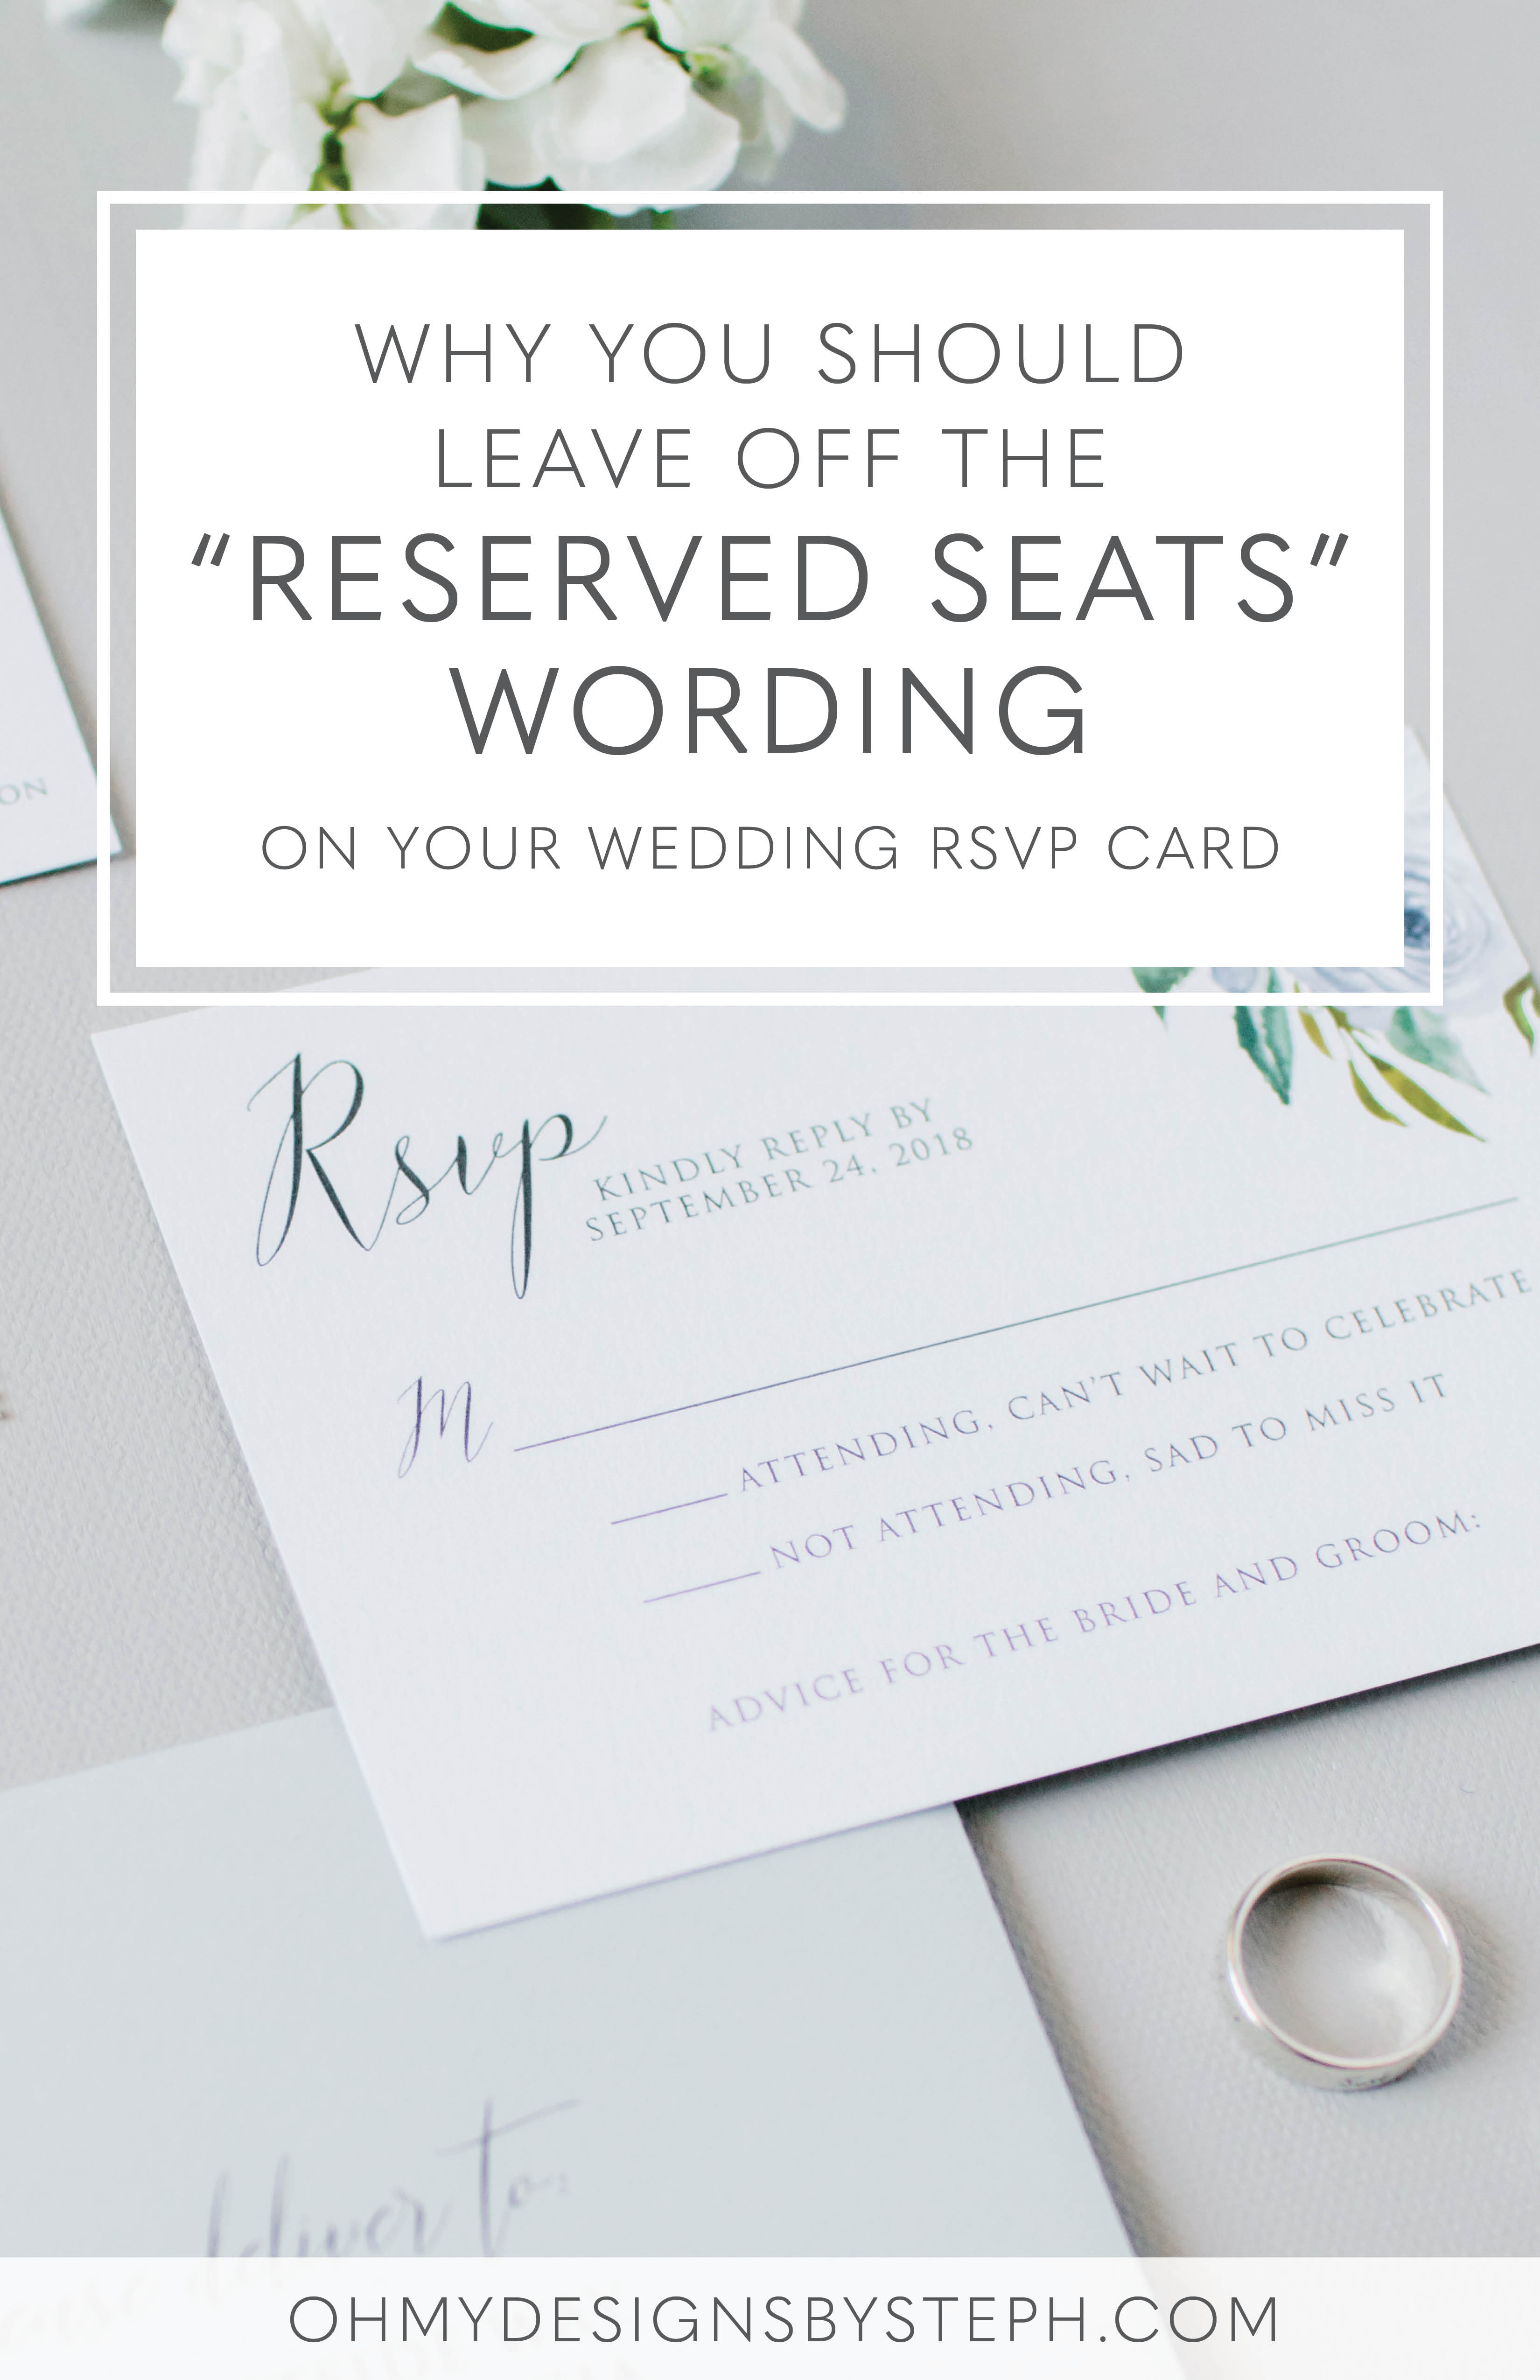 Wedding Response Card Wording.Why You Don T Need The Reserved Seats Wording On Your Rsvp